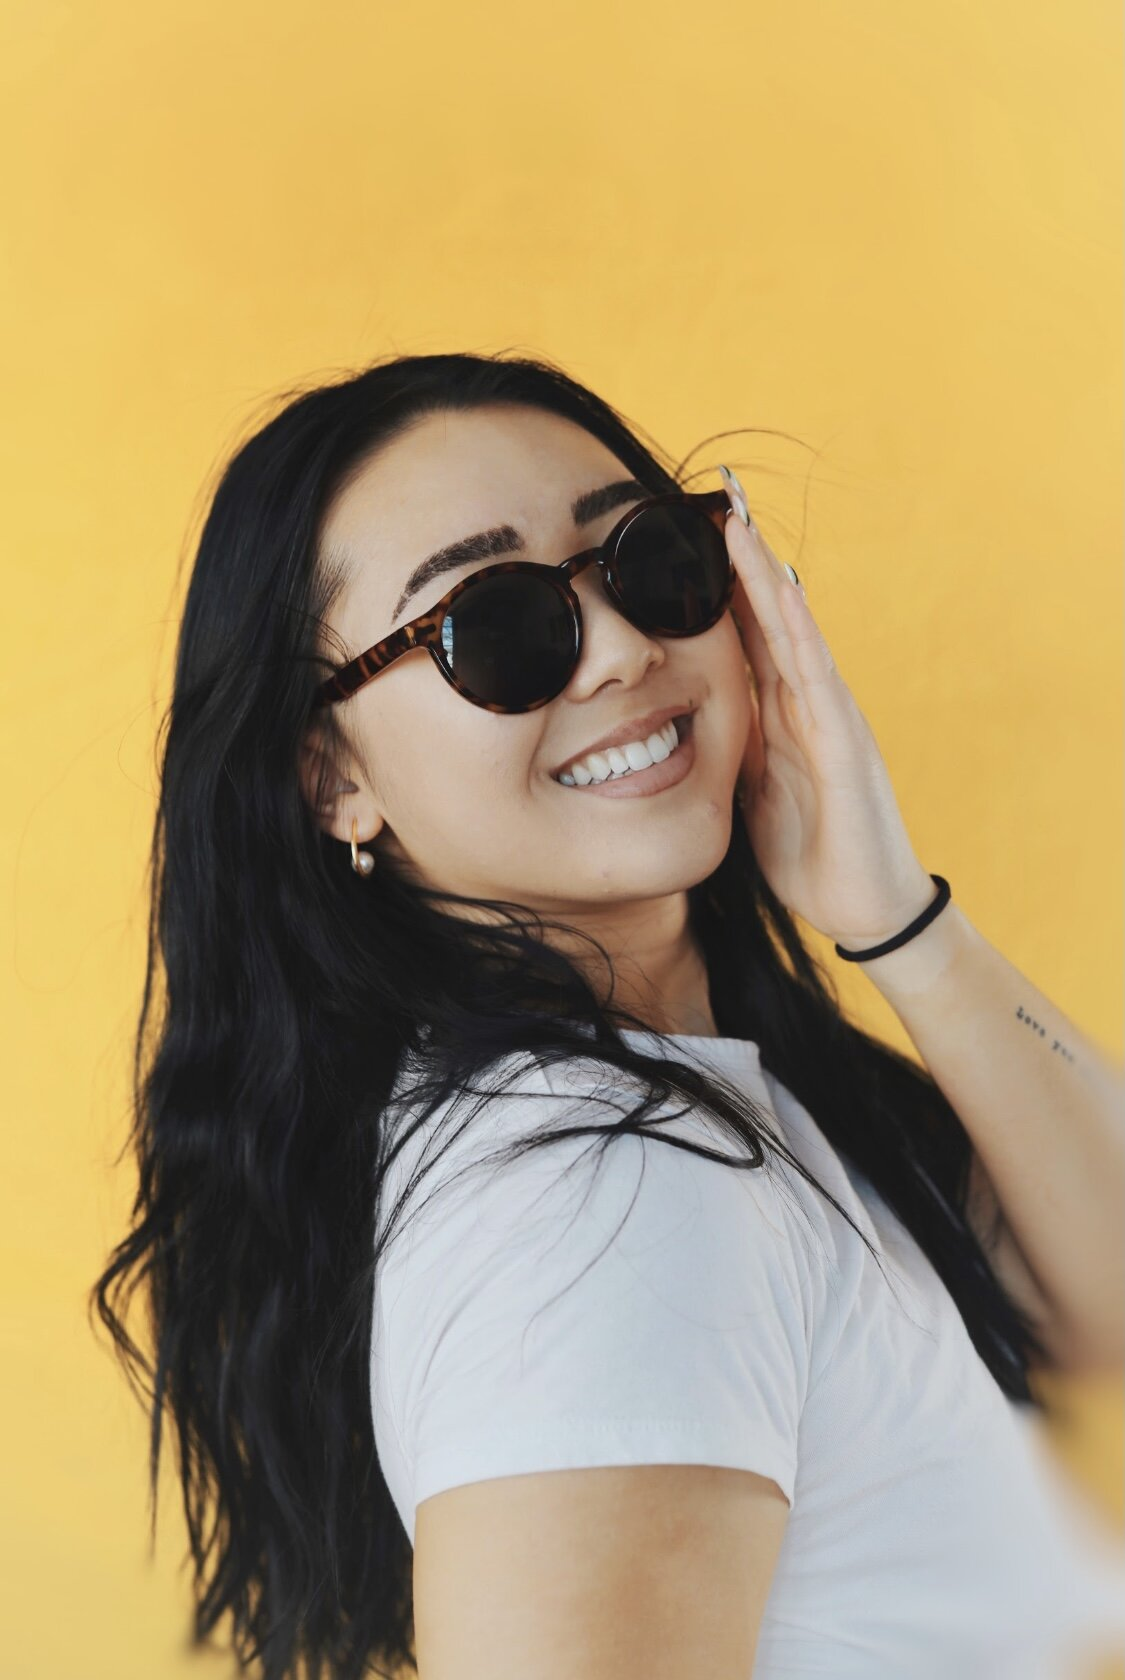 The 8 Best Eco-Friendly & Sustainable Sunglasses for Summer 2021 — Sustainably Chic